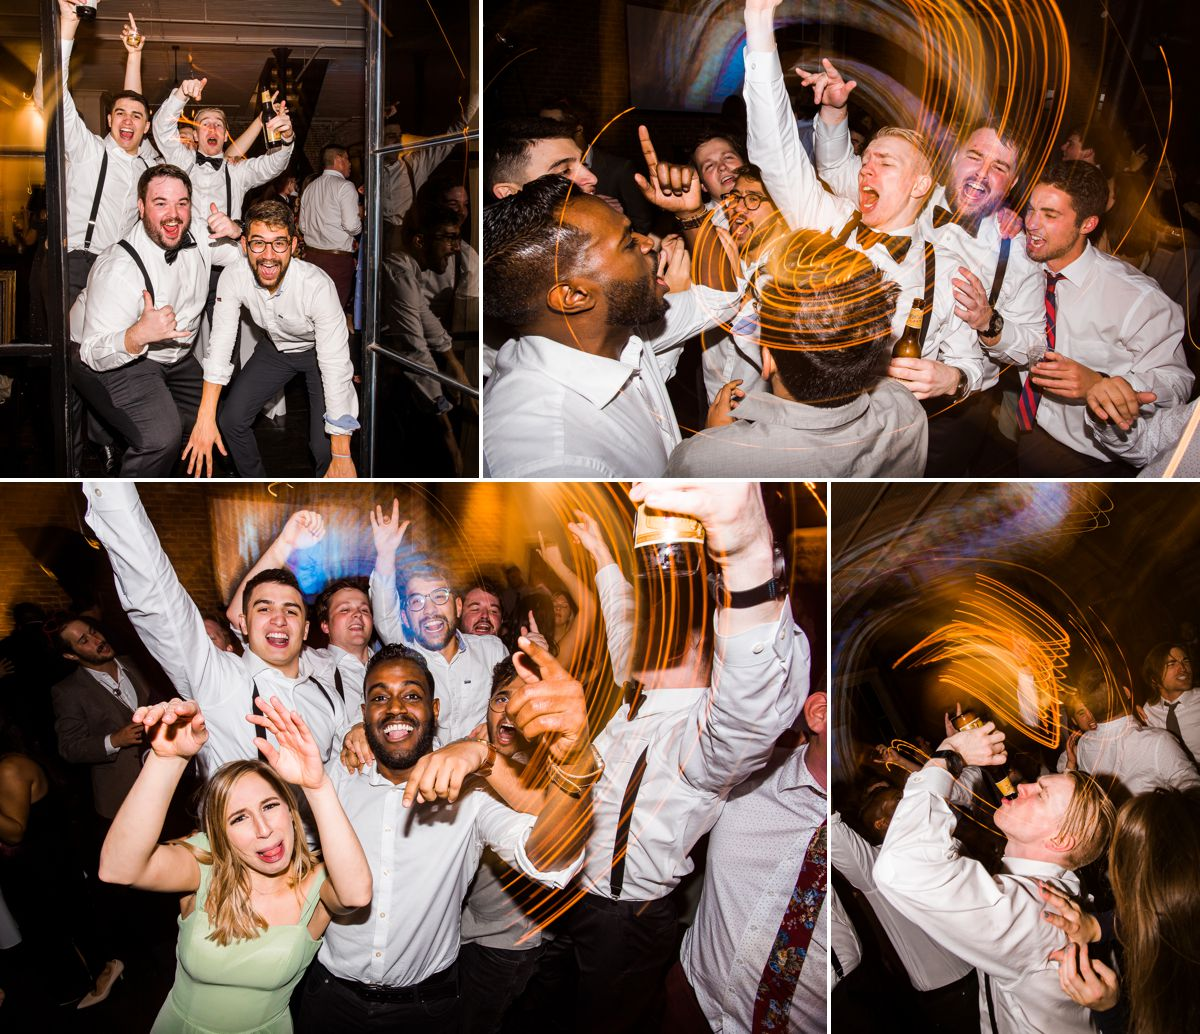 Station 3 Wedding Reception - Houston Wedding Photographers